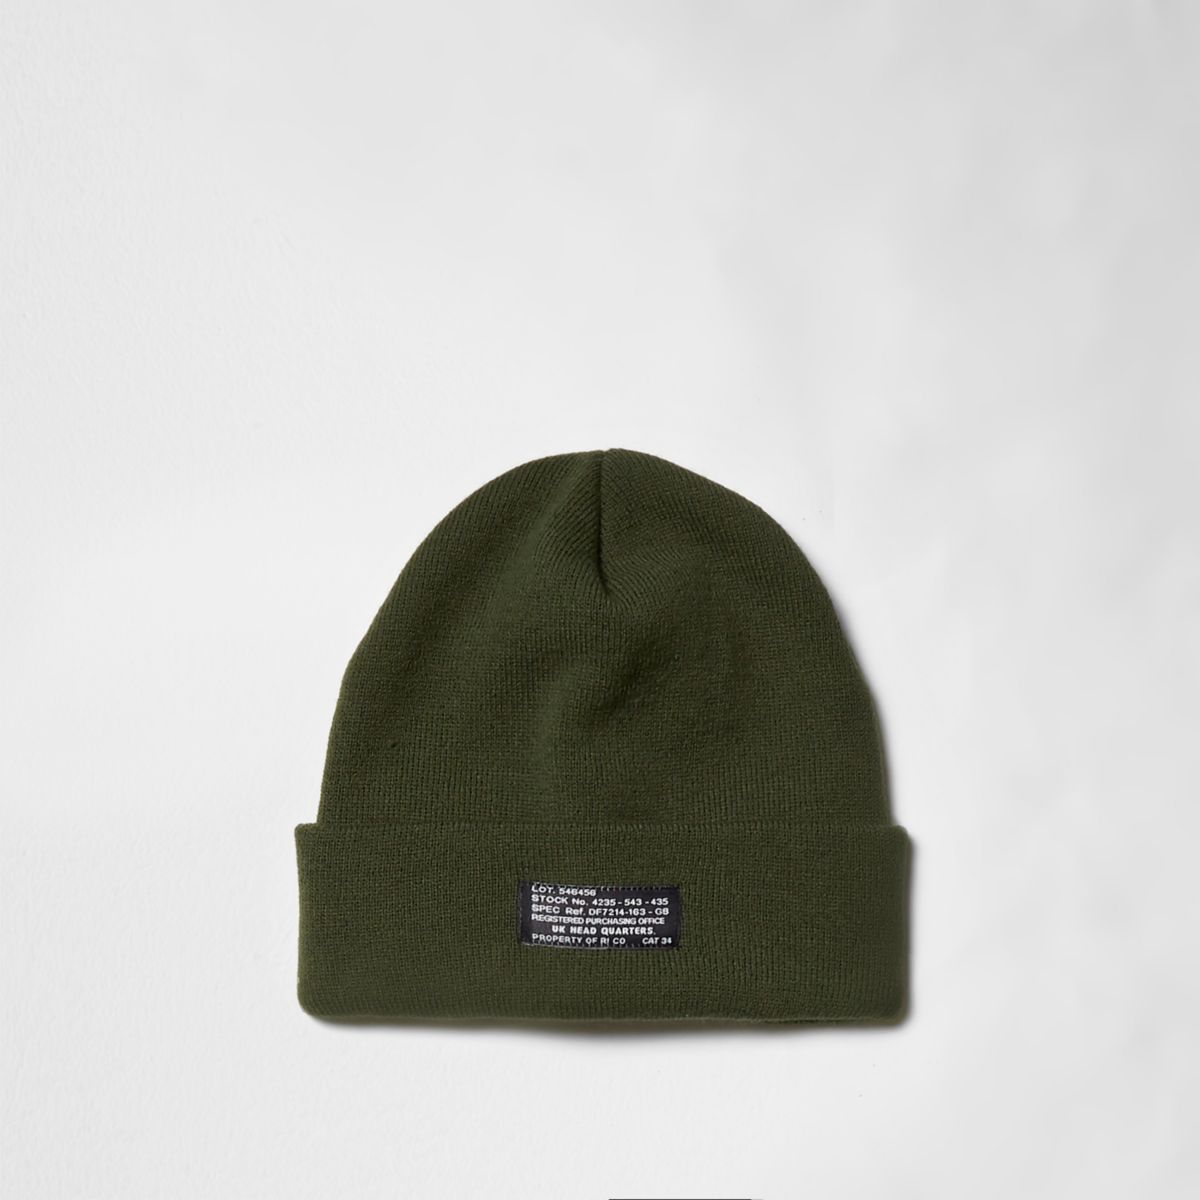 Green knit turn up beanie hat